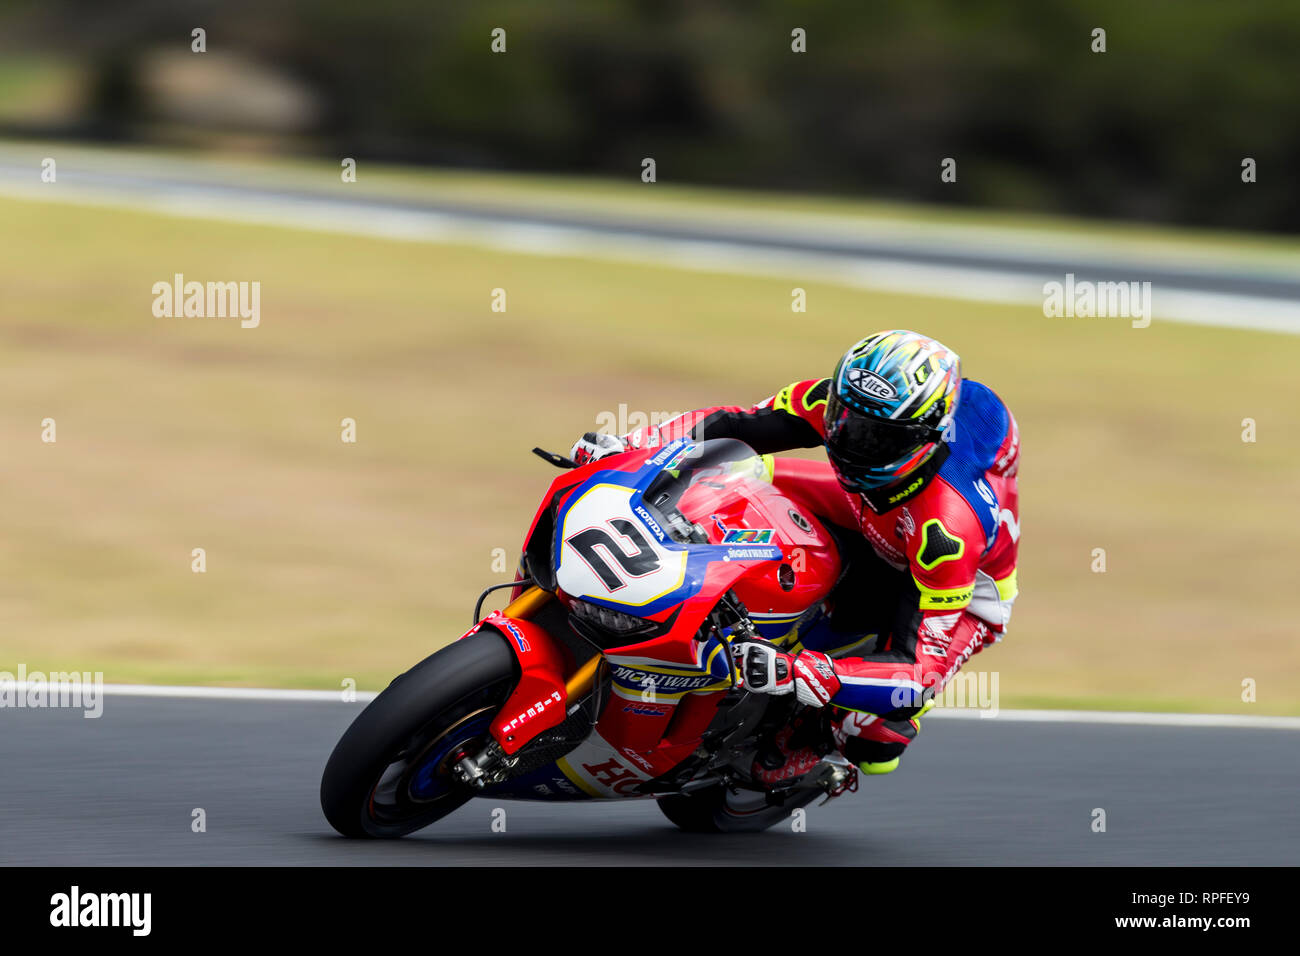 Phillip Island, Australia. 22nd Feb, 2019. World Superbikes Championship, Friday free practice; The number 2 Moriwaki-Althea Honda Racing Team Honda ridden by Leon Camier during Free Practice 2 Credit: Action Plus Sports/Alamy Live News Stock Photo